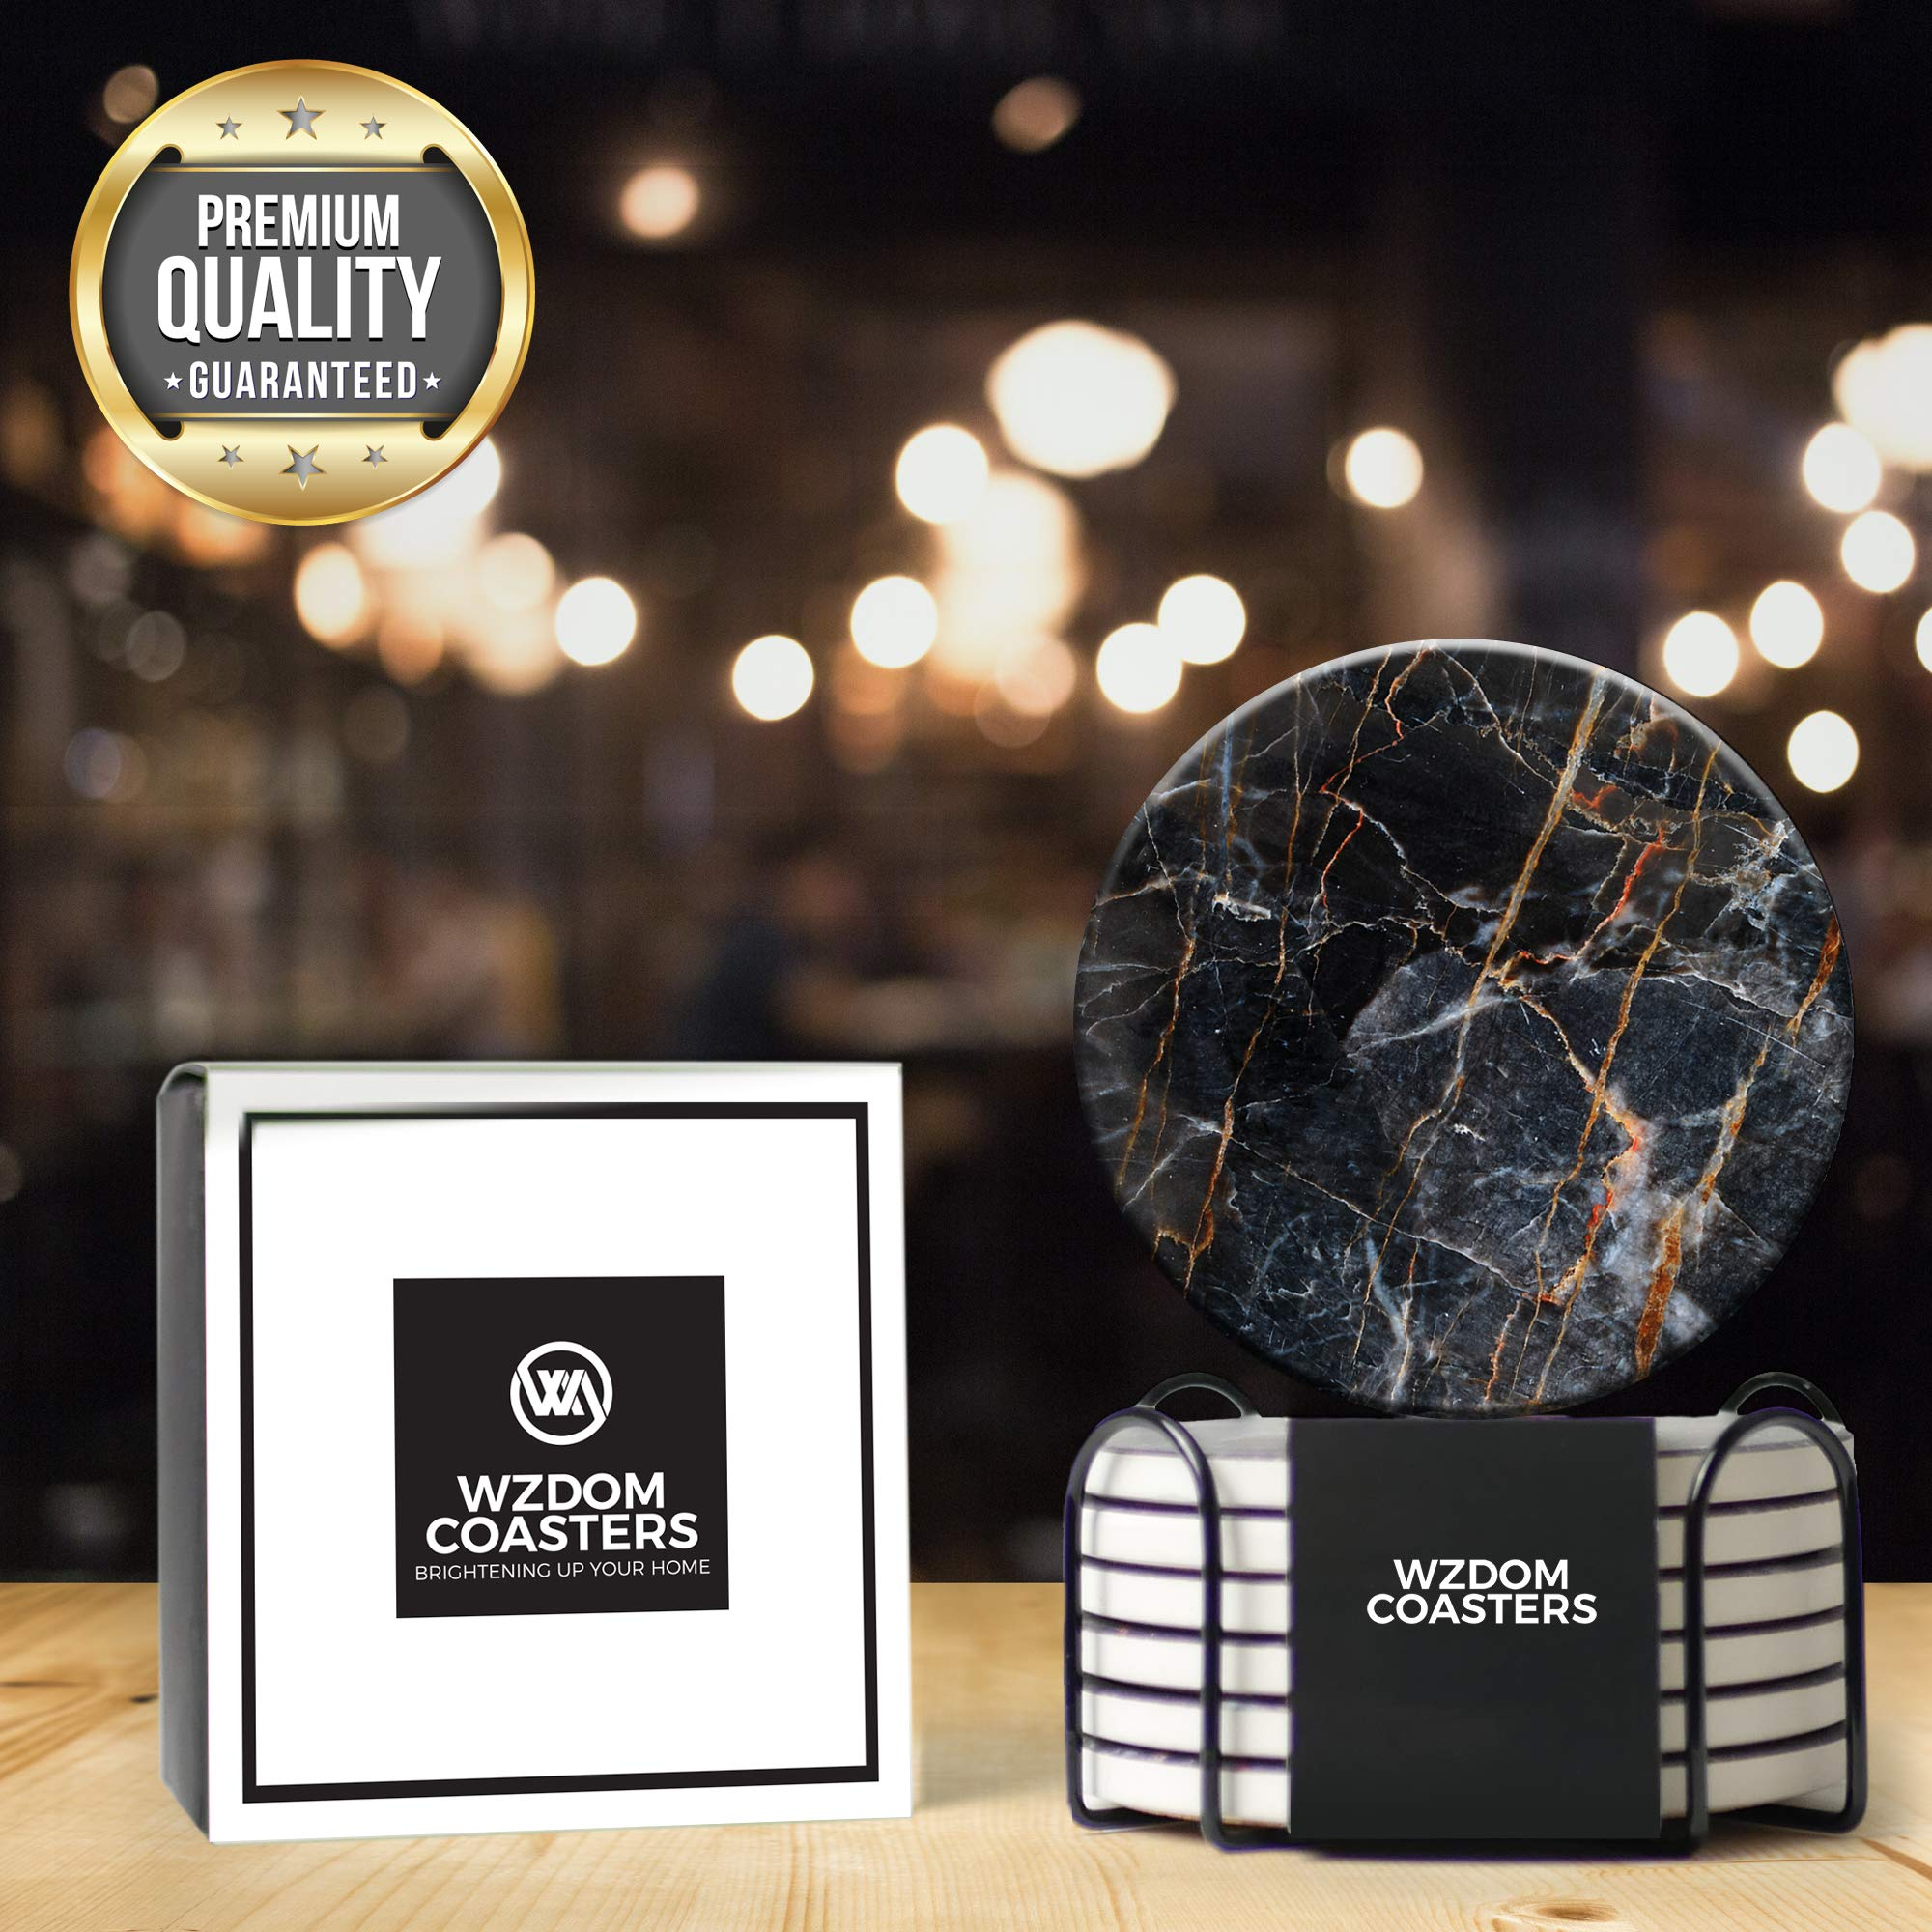 Wzdom Coasters For Drinks Absorbent With Holder Ceramic Stone Drink Coasters With Cork Base Absorbent Coaster Set Housewarming Gift Set Of 6 Black Coasters Buy Online In